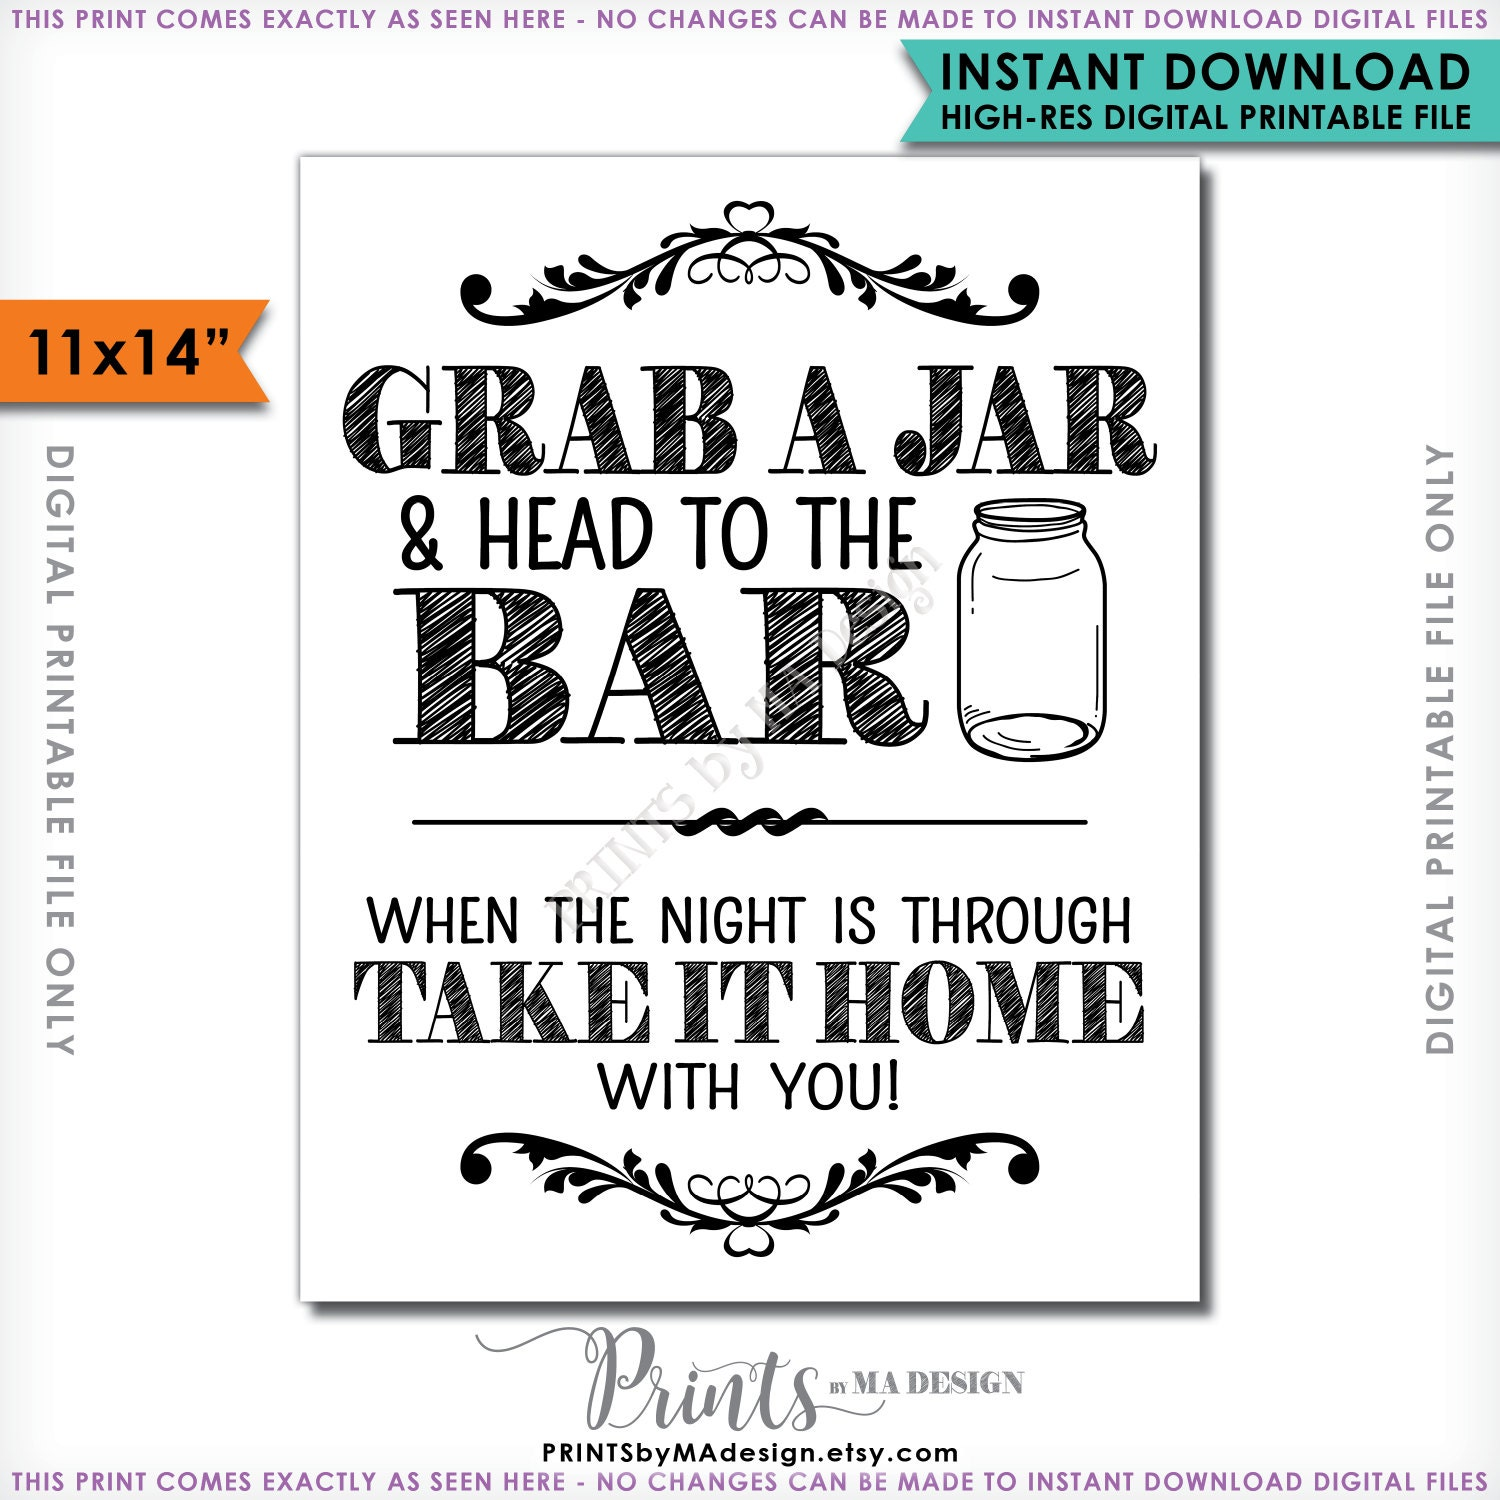 photo relating to Head in a Jar Printable named Seize a Jar and Thoughts in direction of the Bar Indication, Choose your Jar toward the Bar